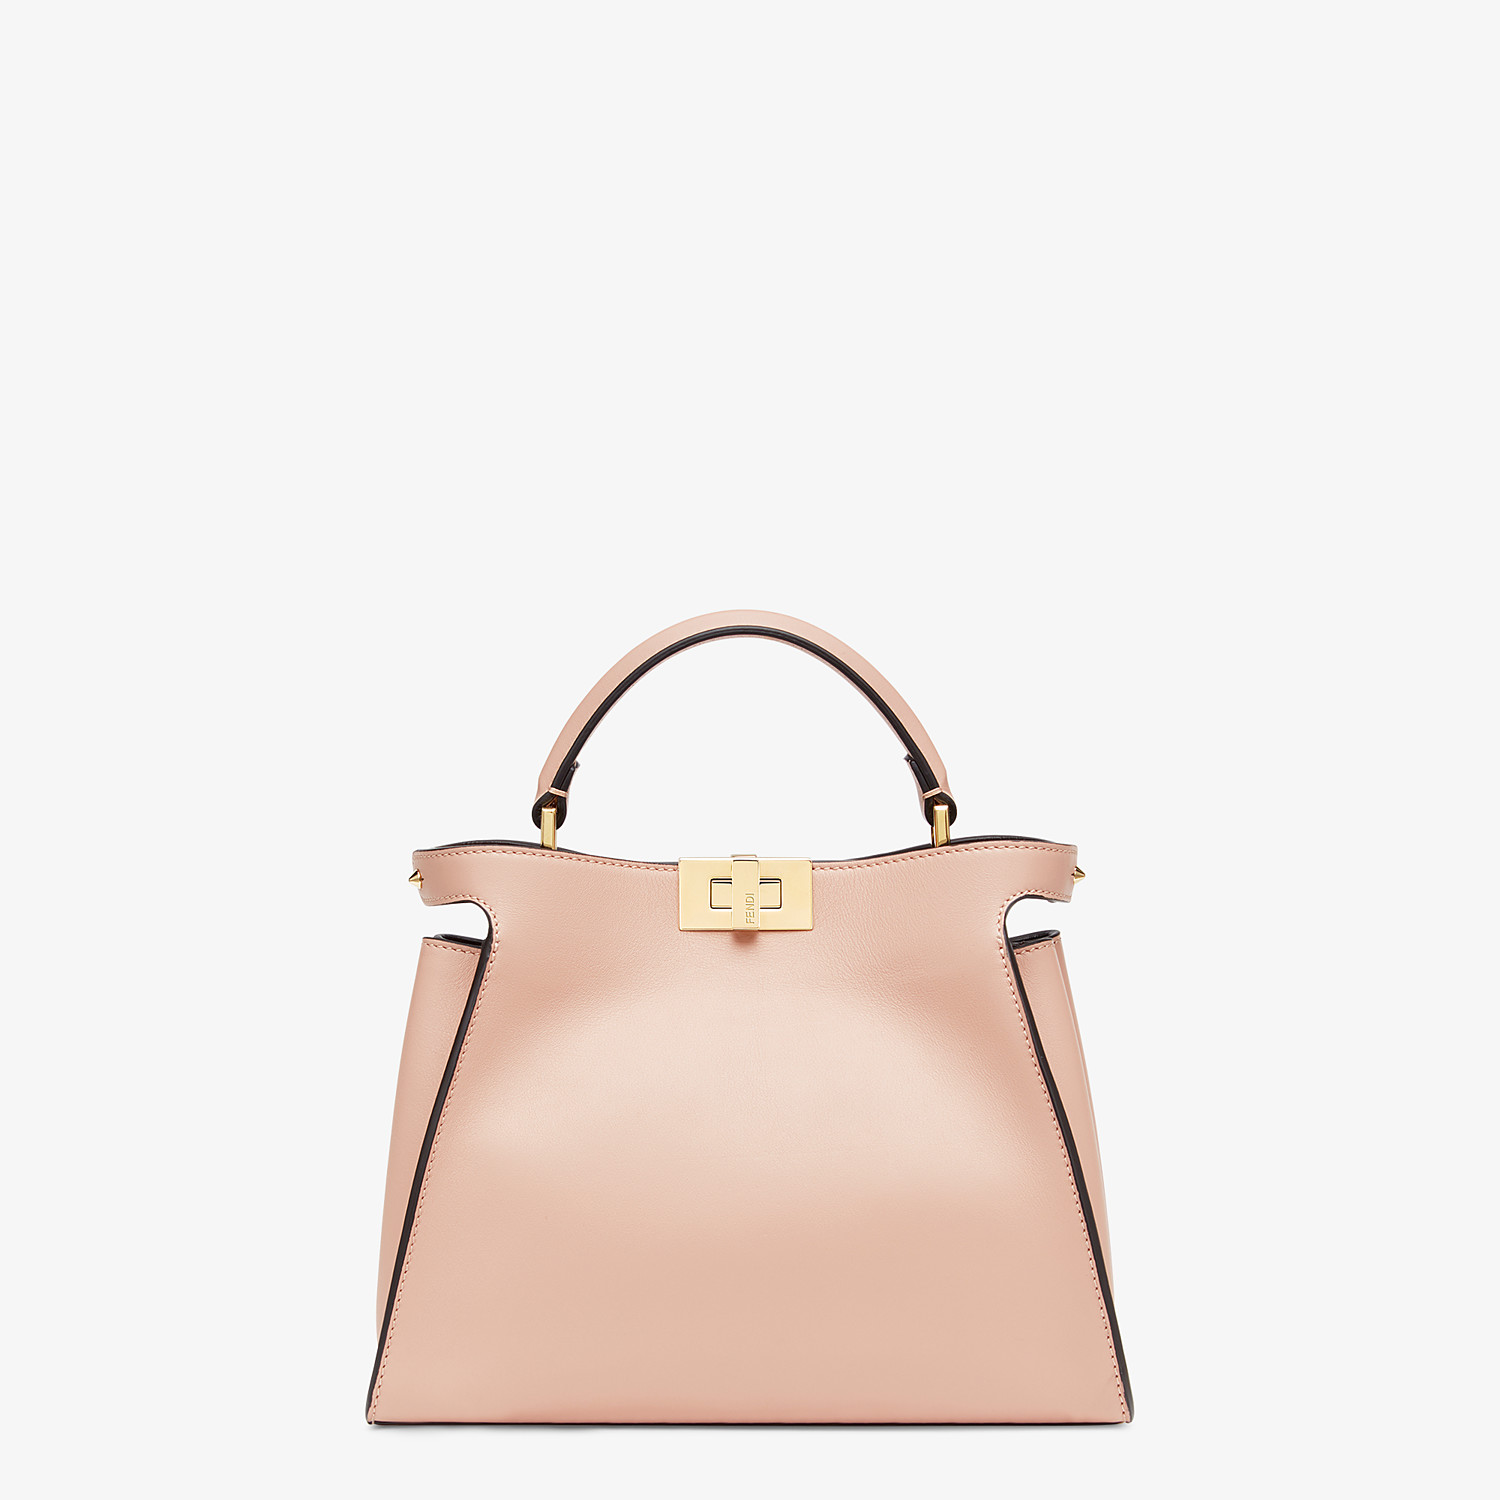 FENDI PEEKABOO ICONIC ESSENTIALLY - Pink leather bag - view 1 detail